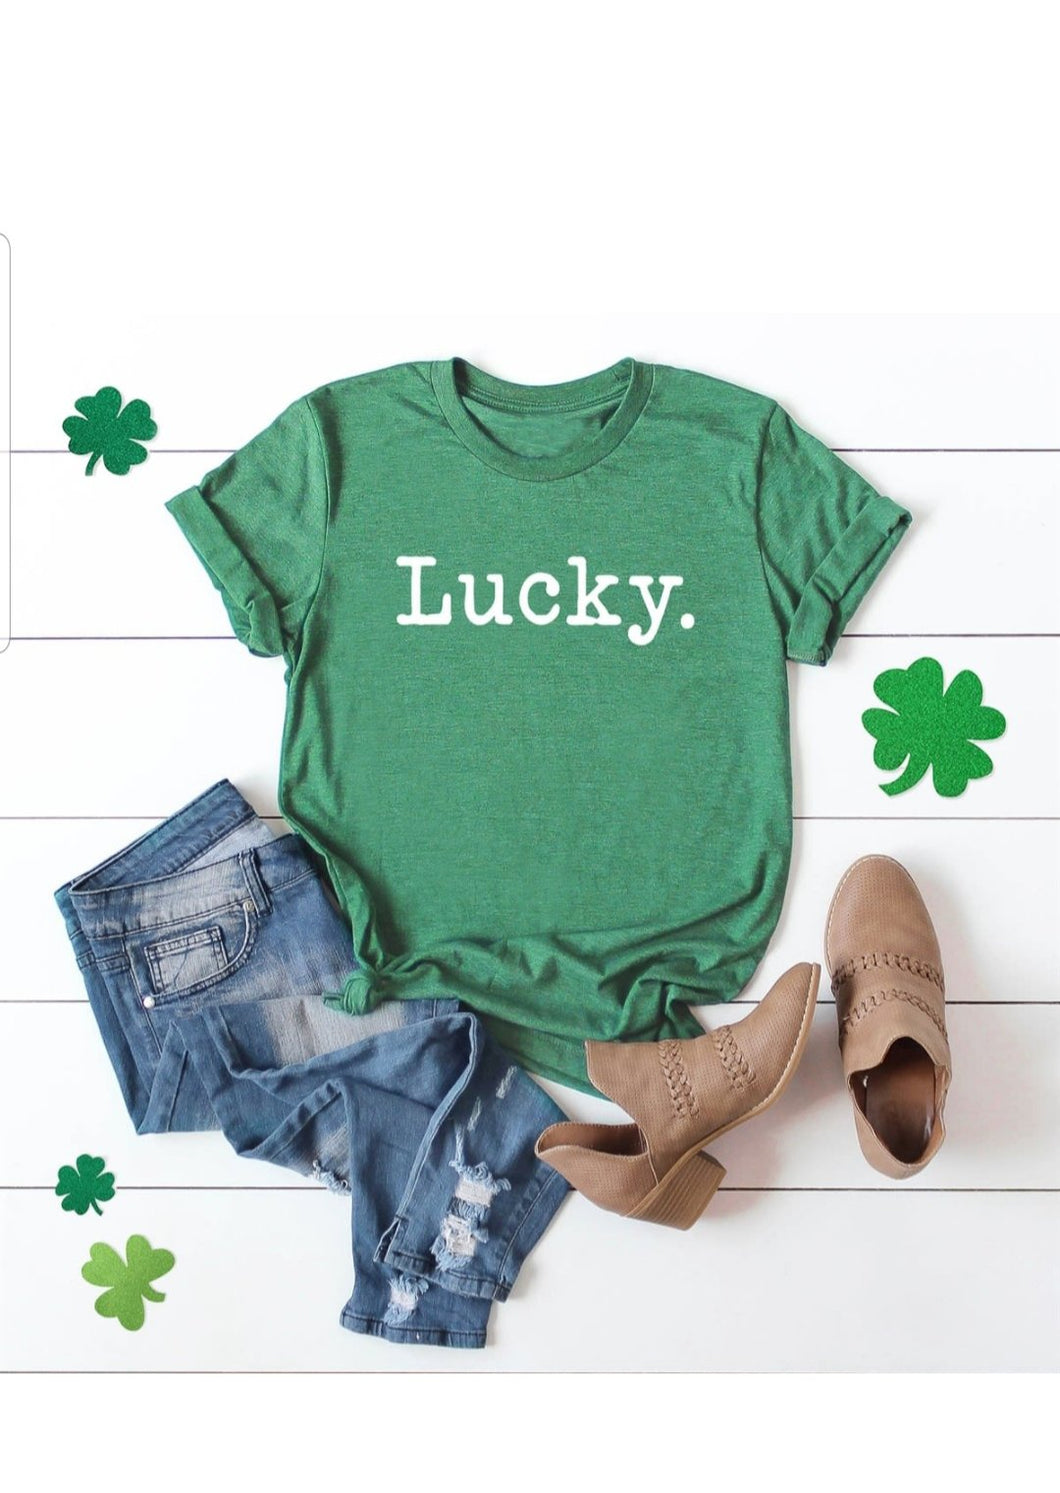 LUCKY Typewriter Tee, St. Patrick's Day Shirt, Choose Shirt Color - The Hot Polka Dot